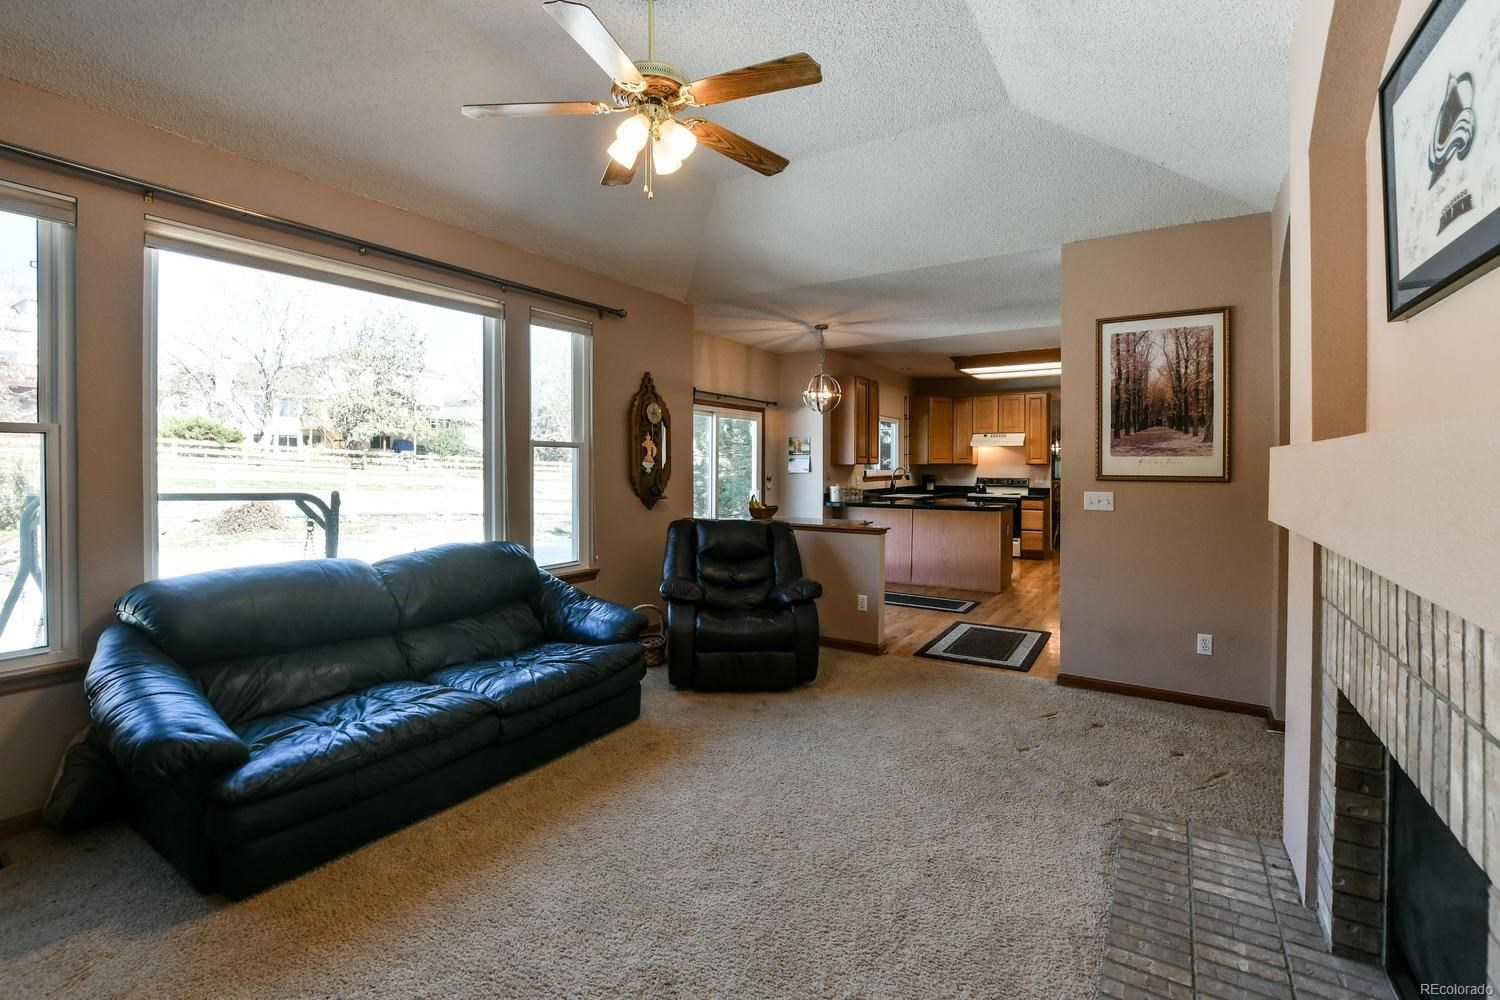 MLS# 8309835 - 15 - 1205 Imperial Way, Superior, CO 80027